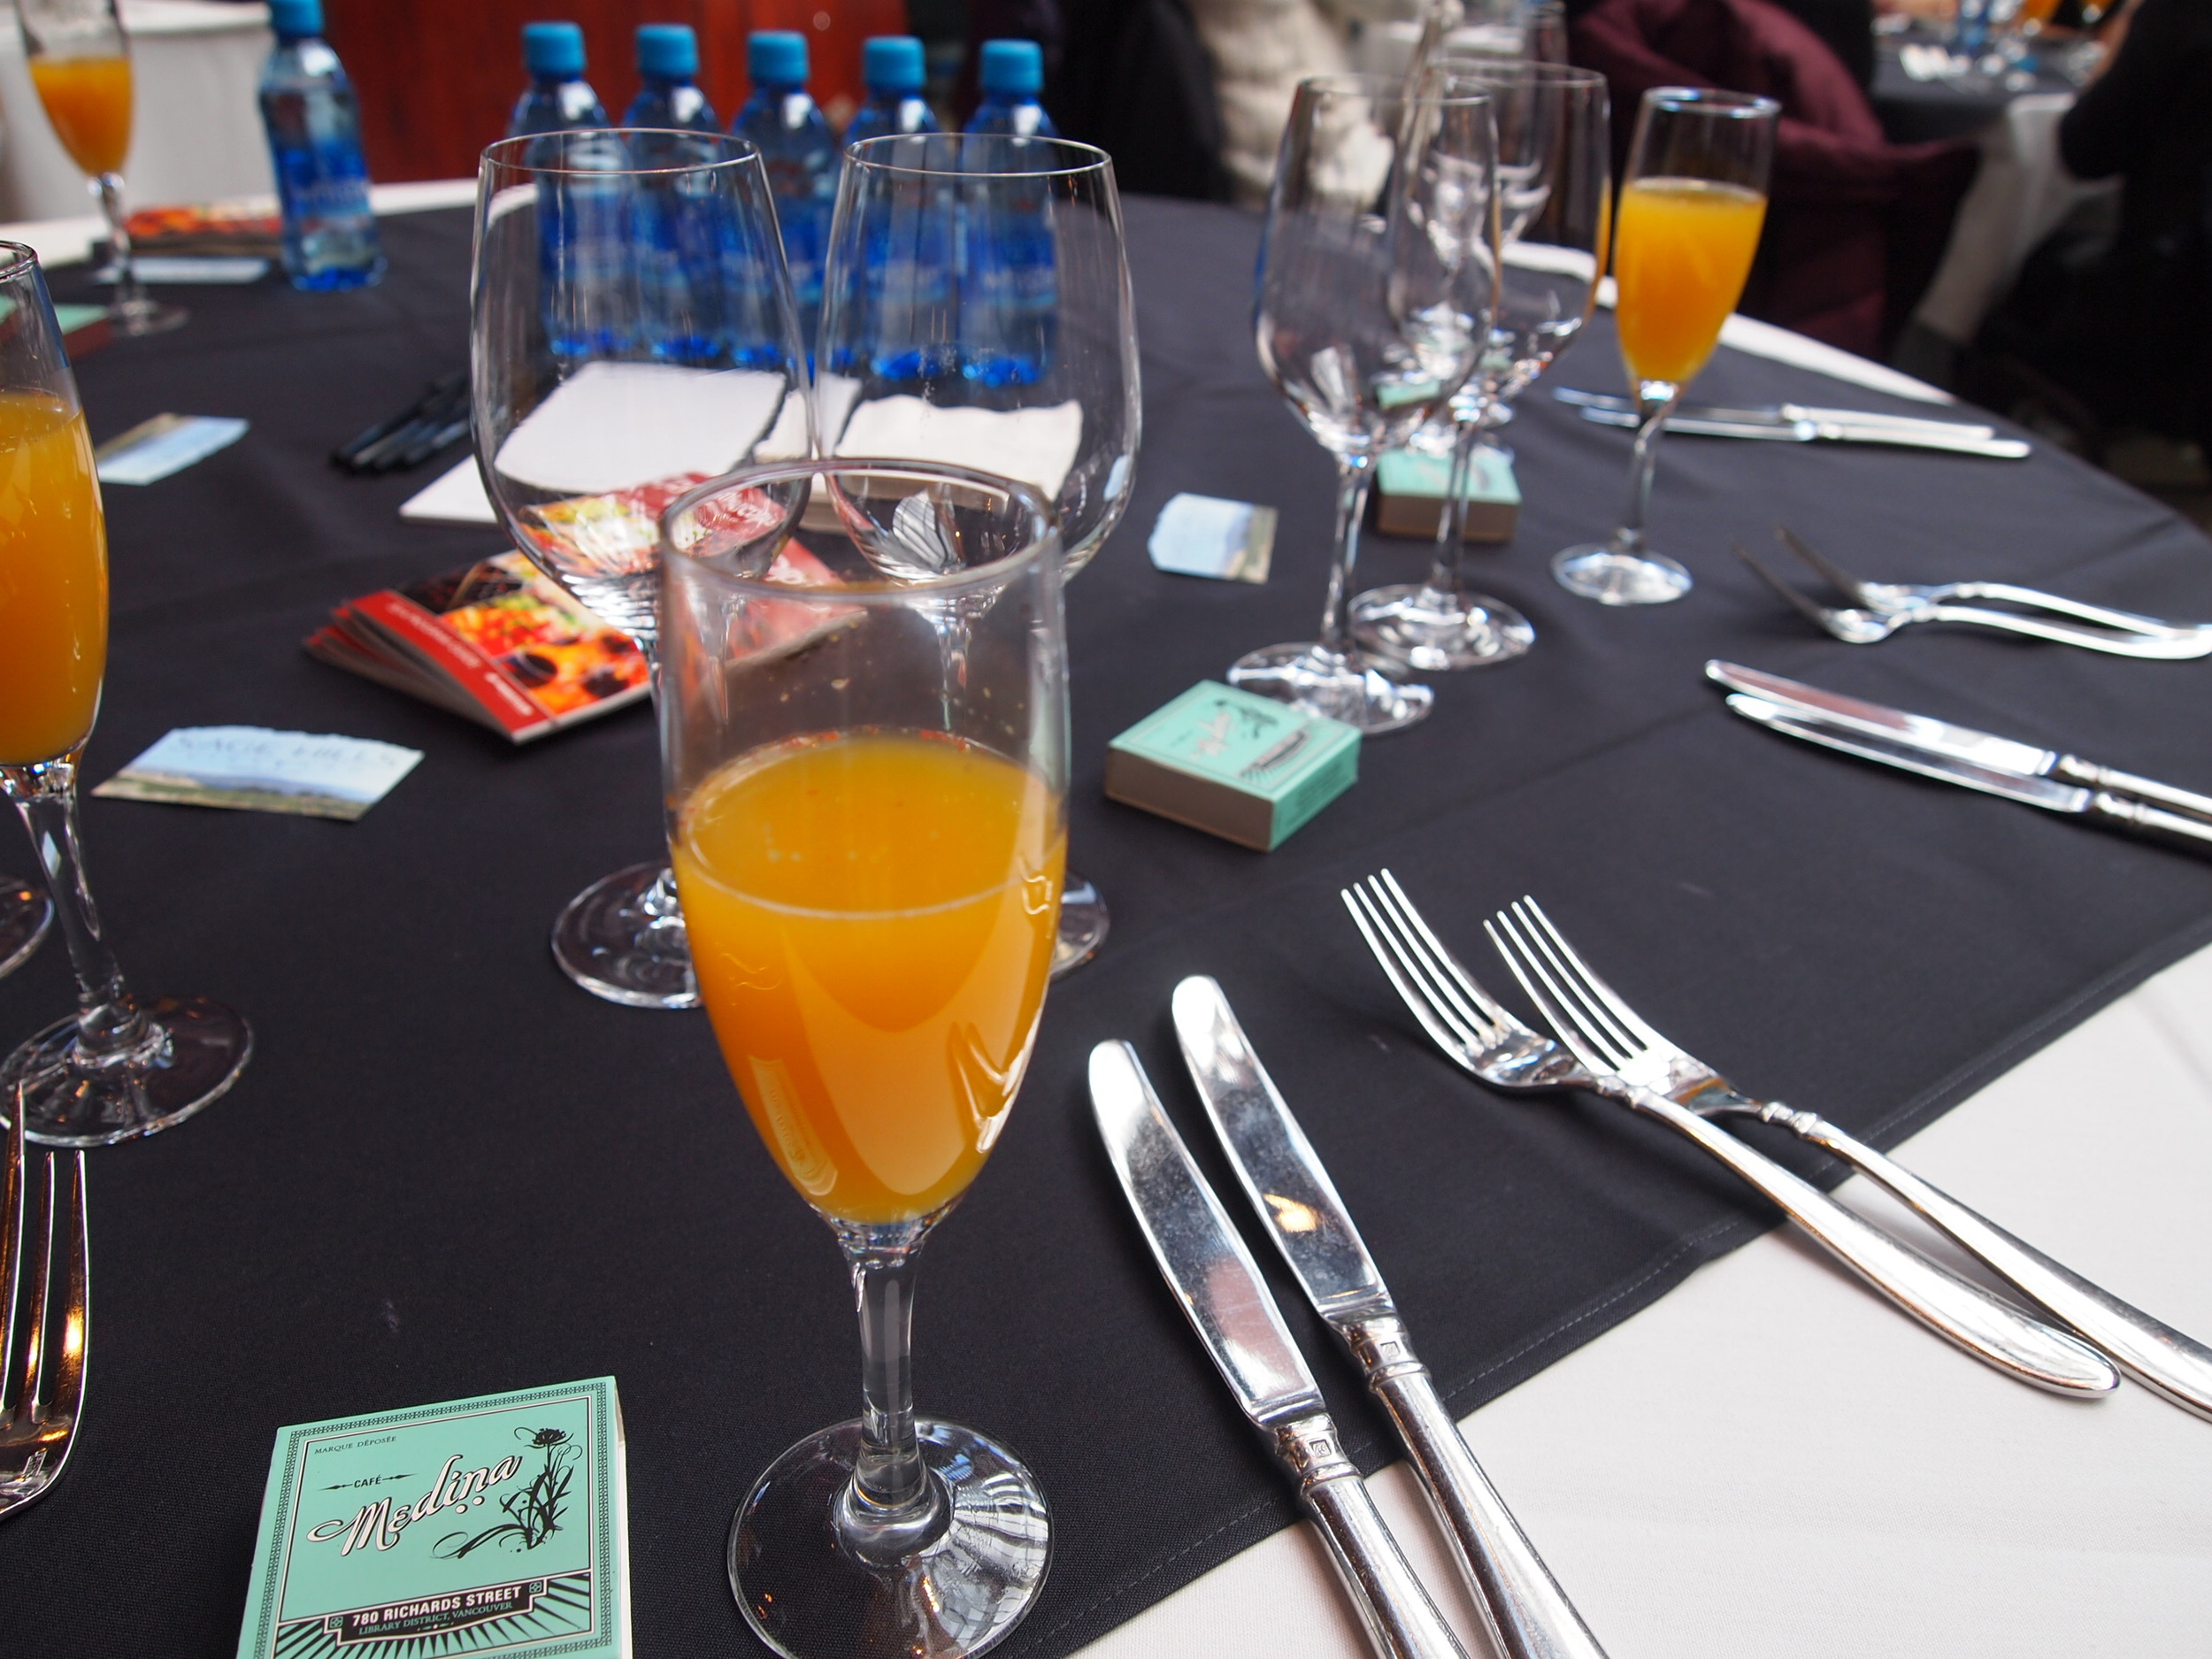 Culinary Stage Series:  Café  Medina. Moroccan mimosa. Cava and reduced orange juice infused with fig, fennel, coriander, pink peppercorn, saffron, anise and cinnamon {read: I could drink this every AM}.